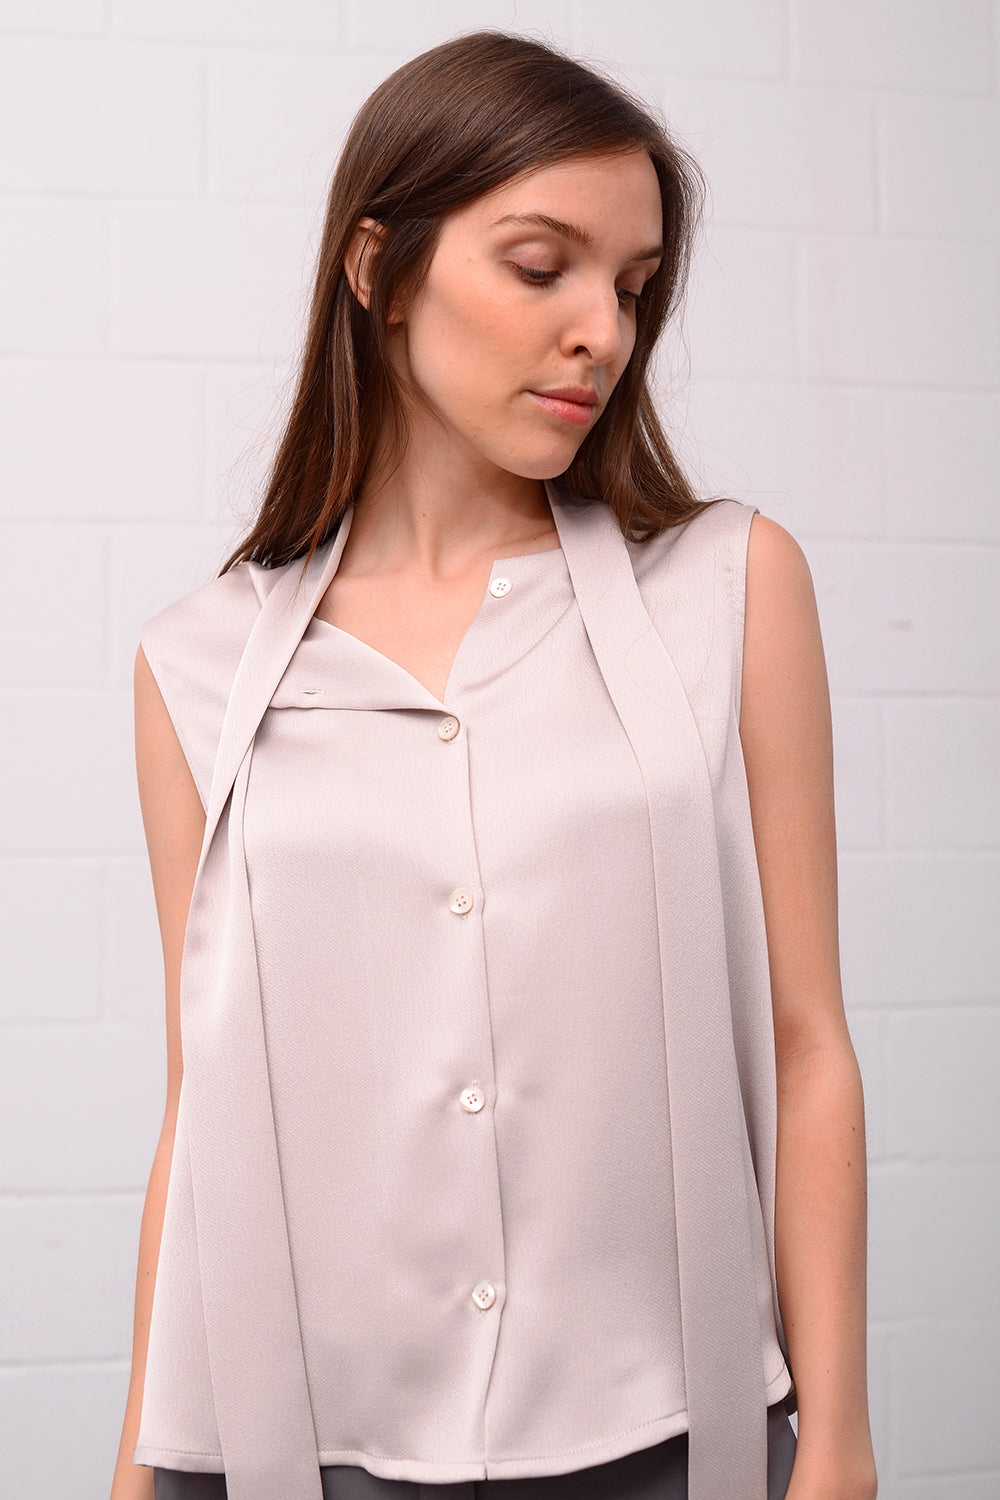 Cainra Blouse - oyster